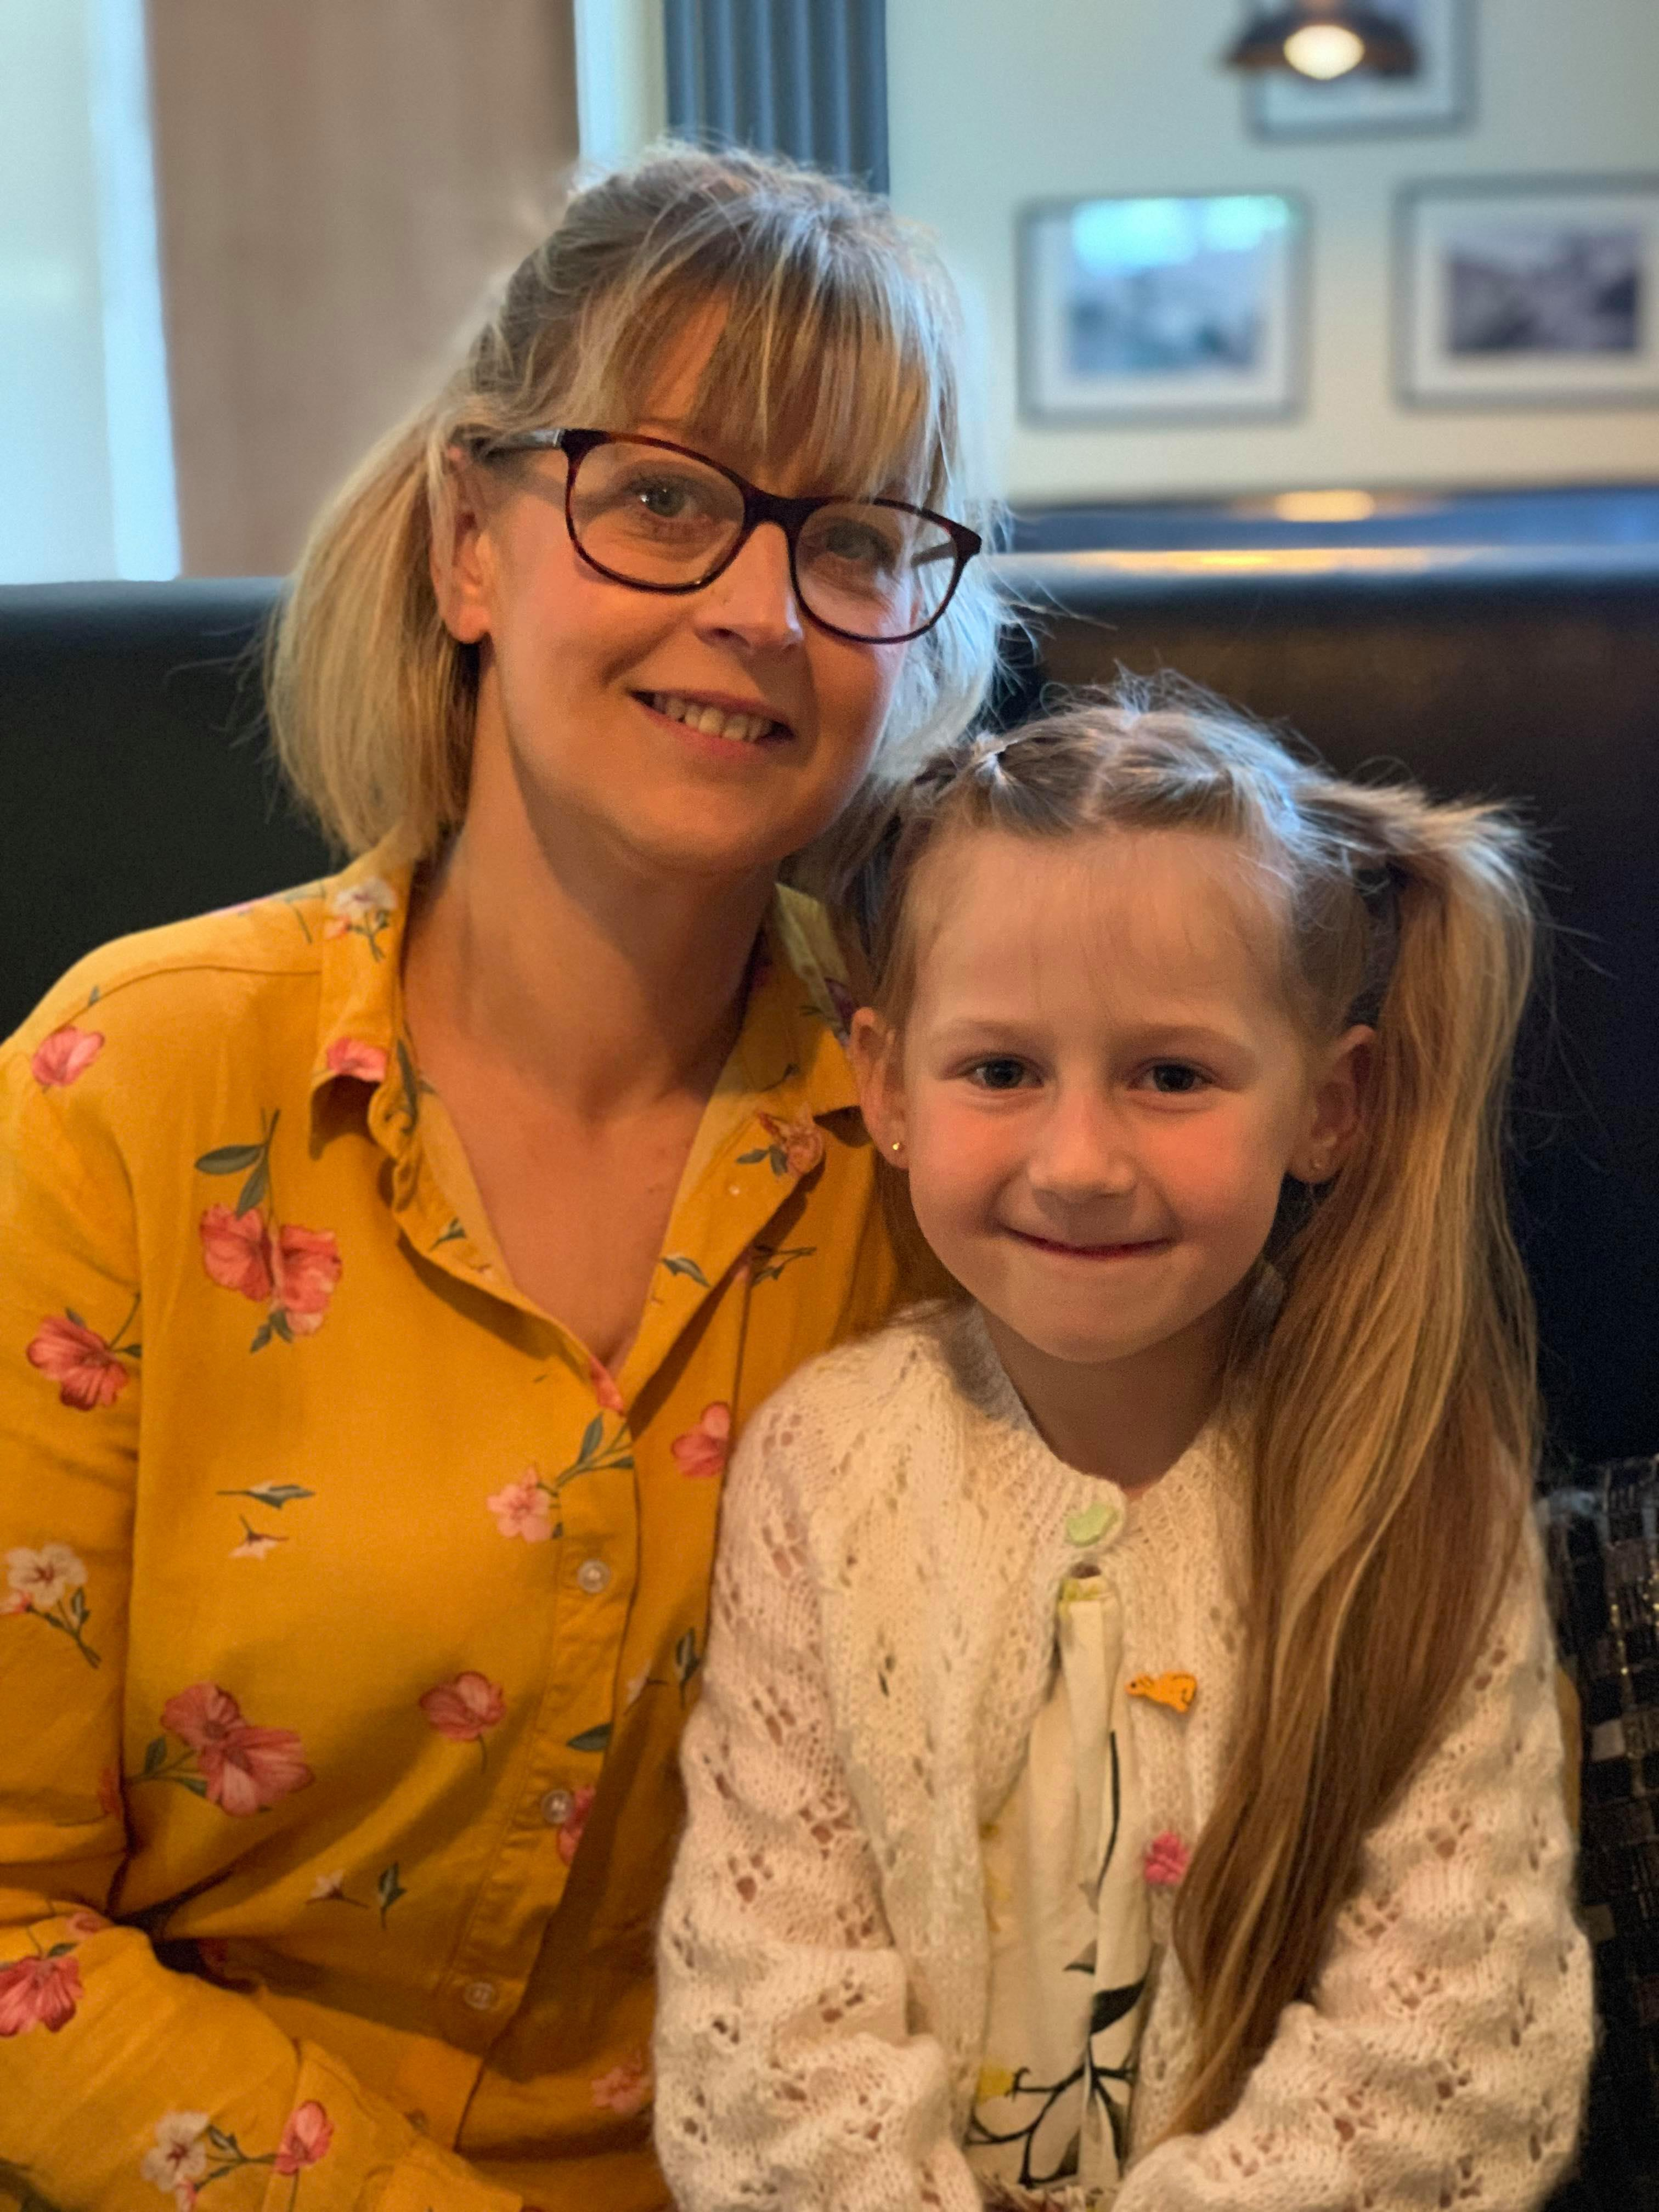 Mum shares photo of 'hug button' she uses to comfort daughter